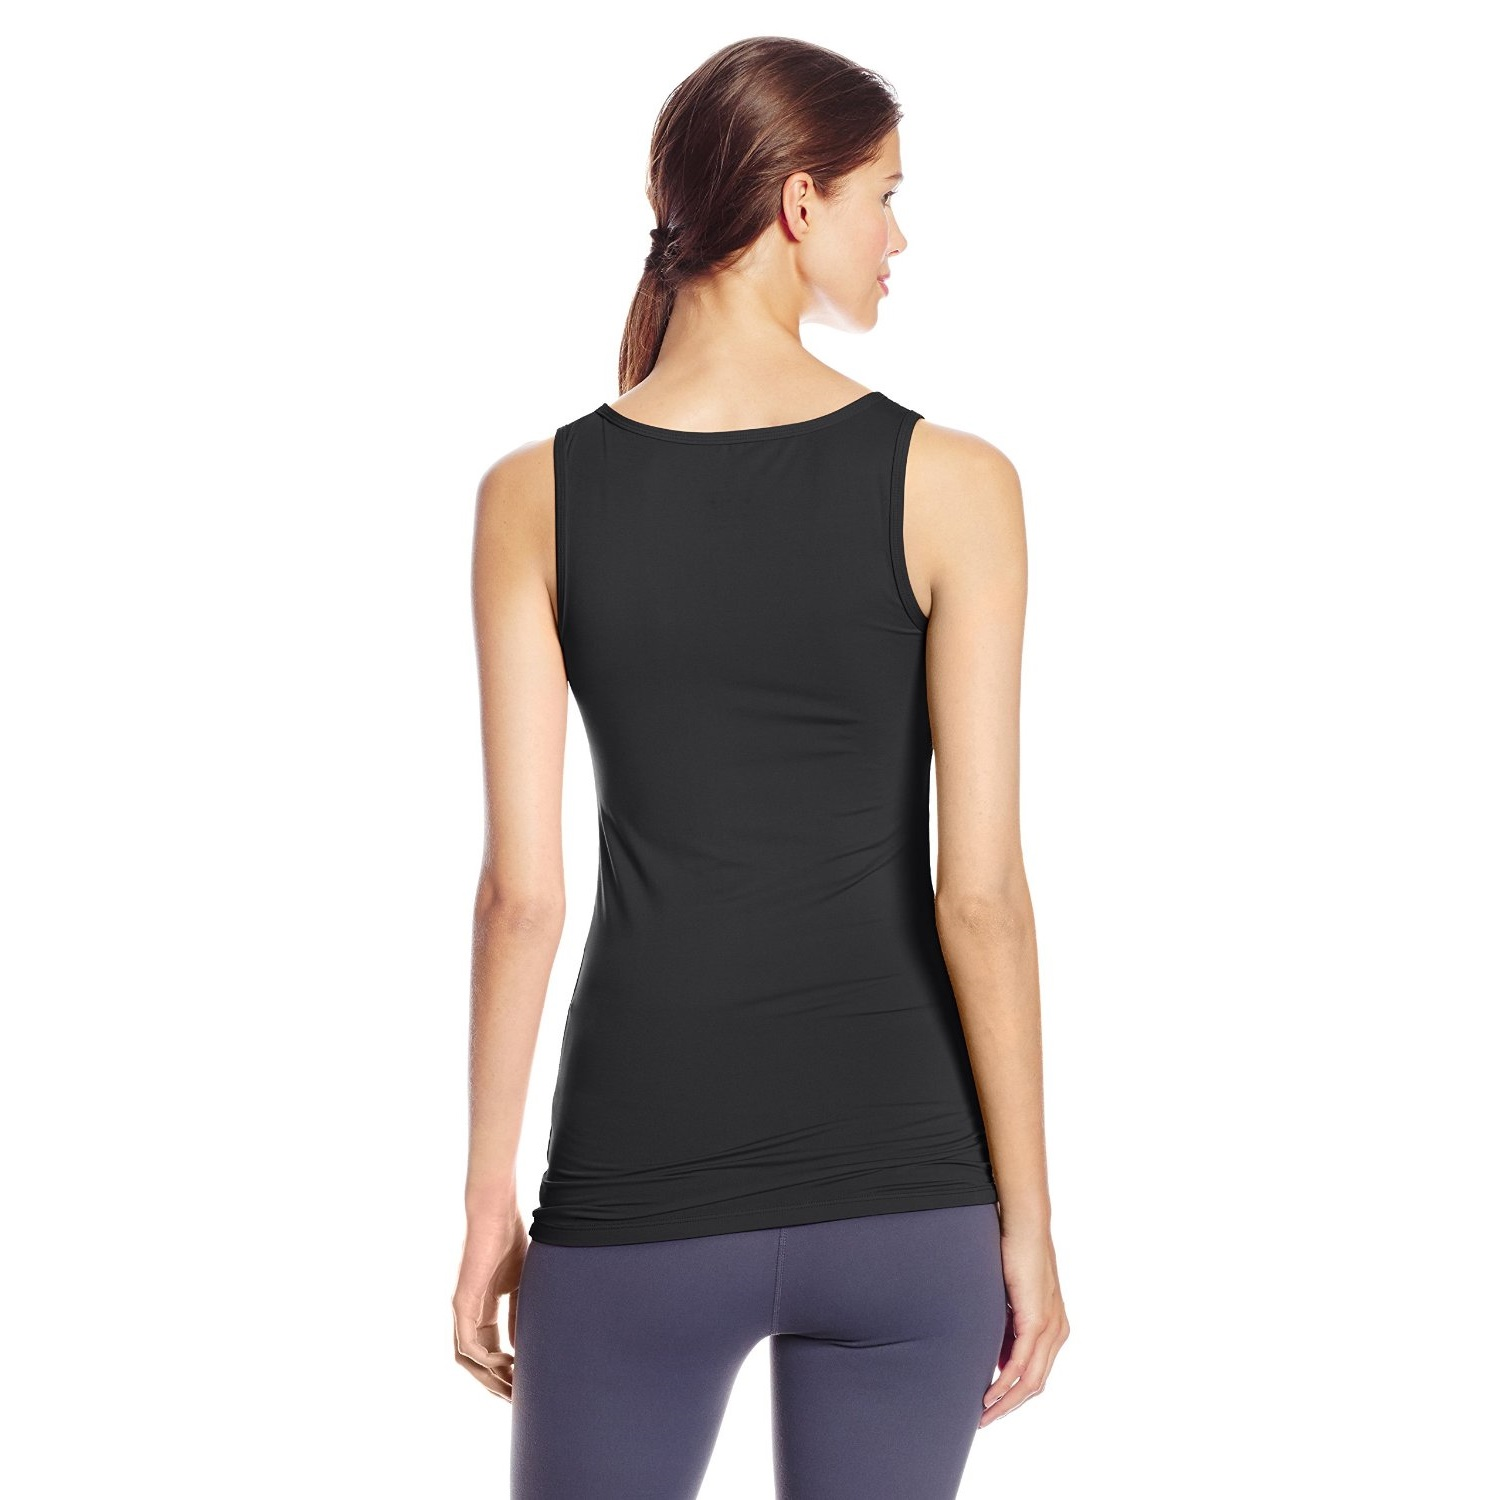 tommie cooper womens recovery tank top yoga shirt